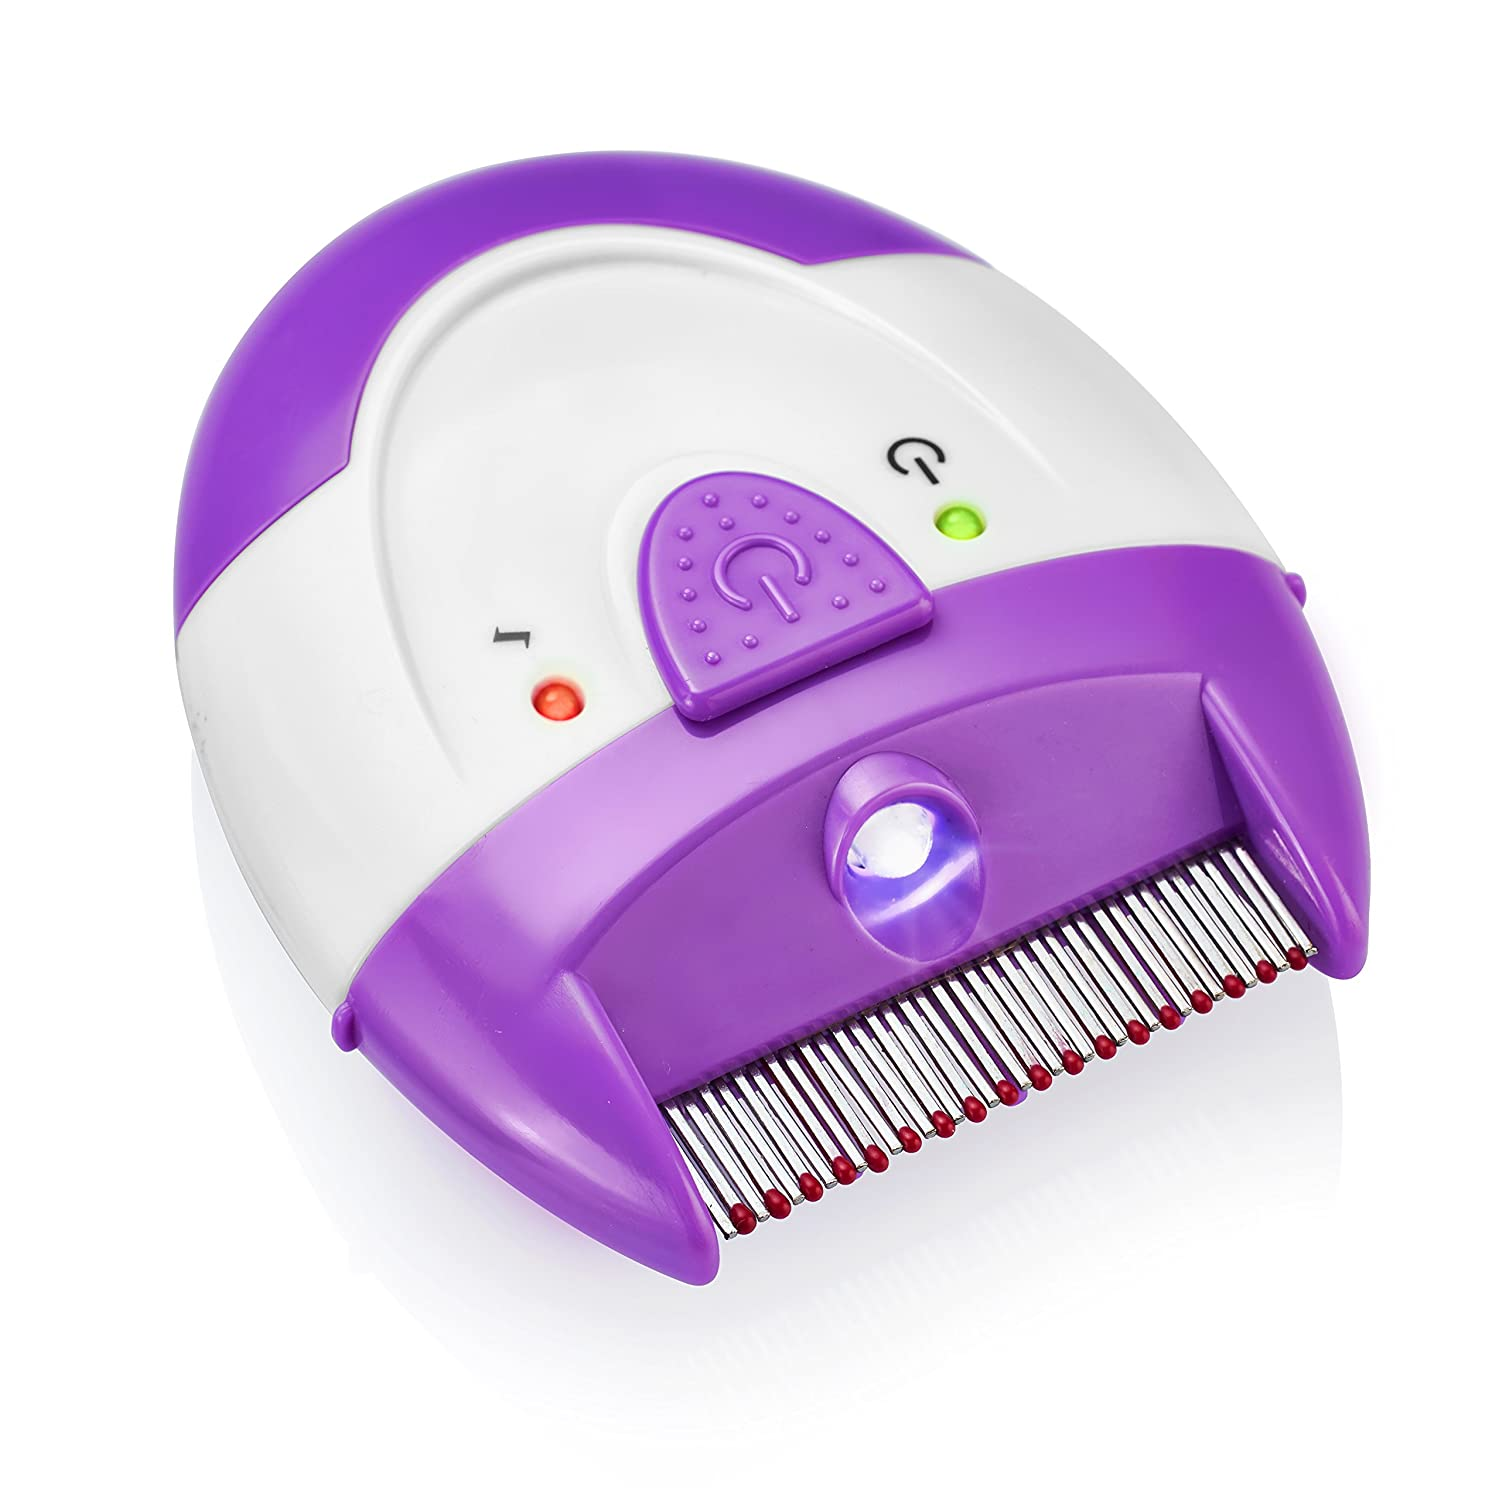 Finito Electronic Lice Comb - Detects And Destroy Lice On Contact Chemical Free TopoCare 1551